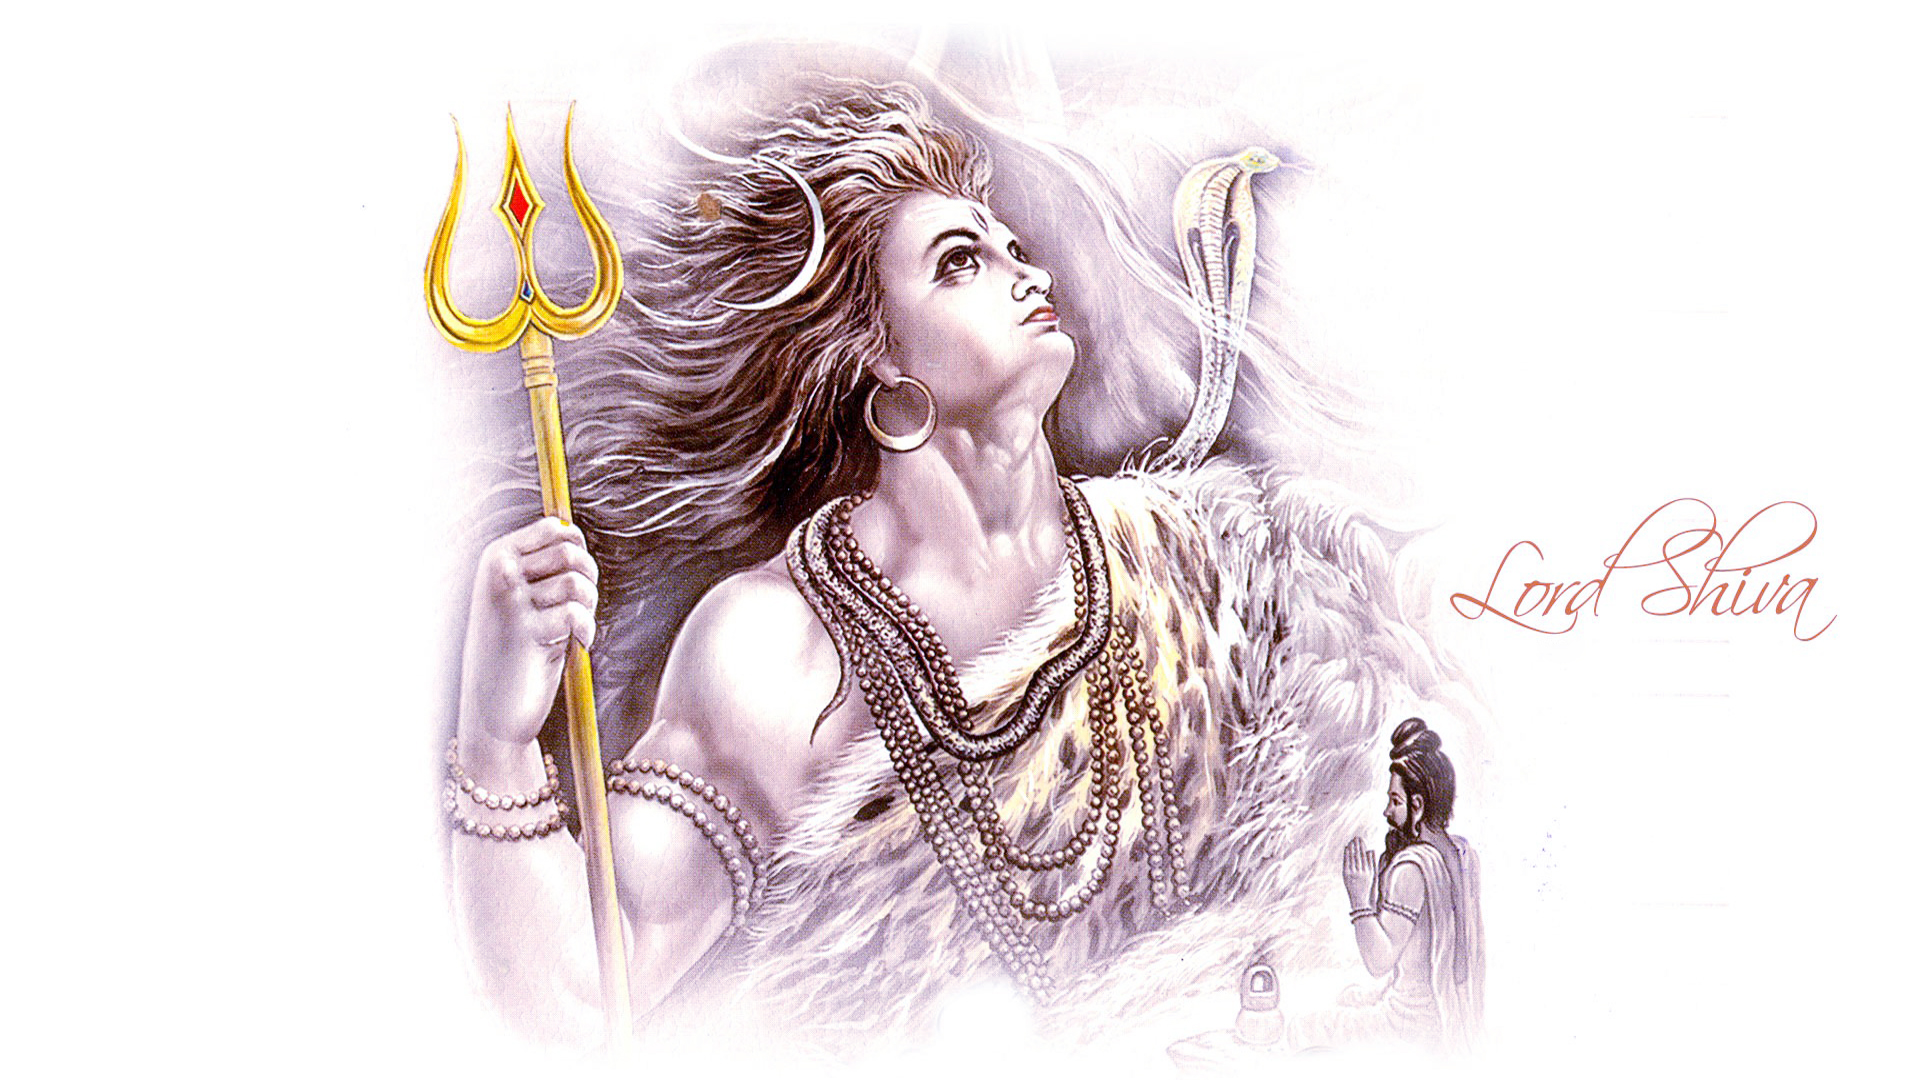 Lord Shiva Hd Wallpapers 1080p Download Desktop Background: Avatar HD Wallpapers 1080p